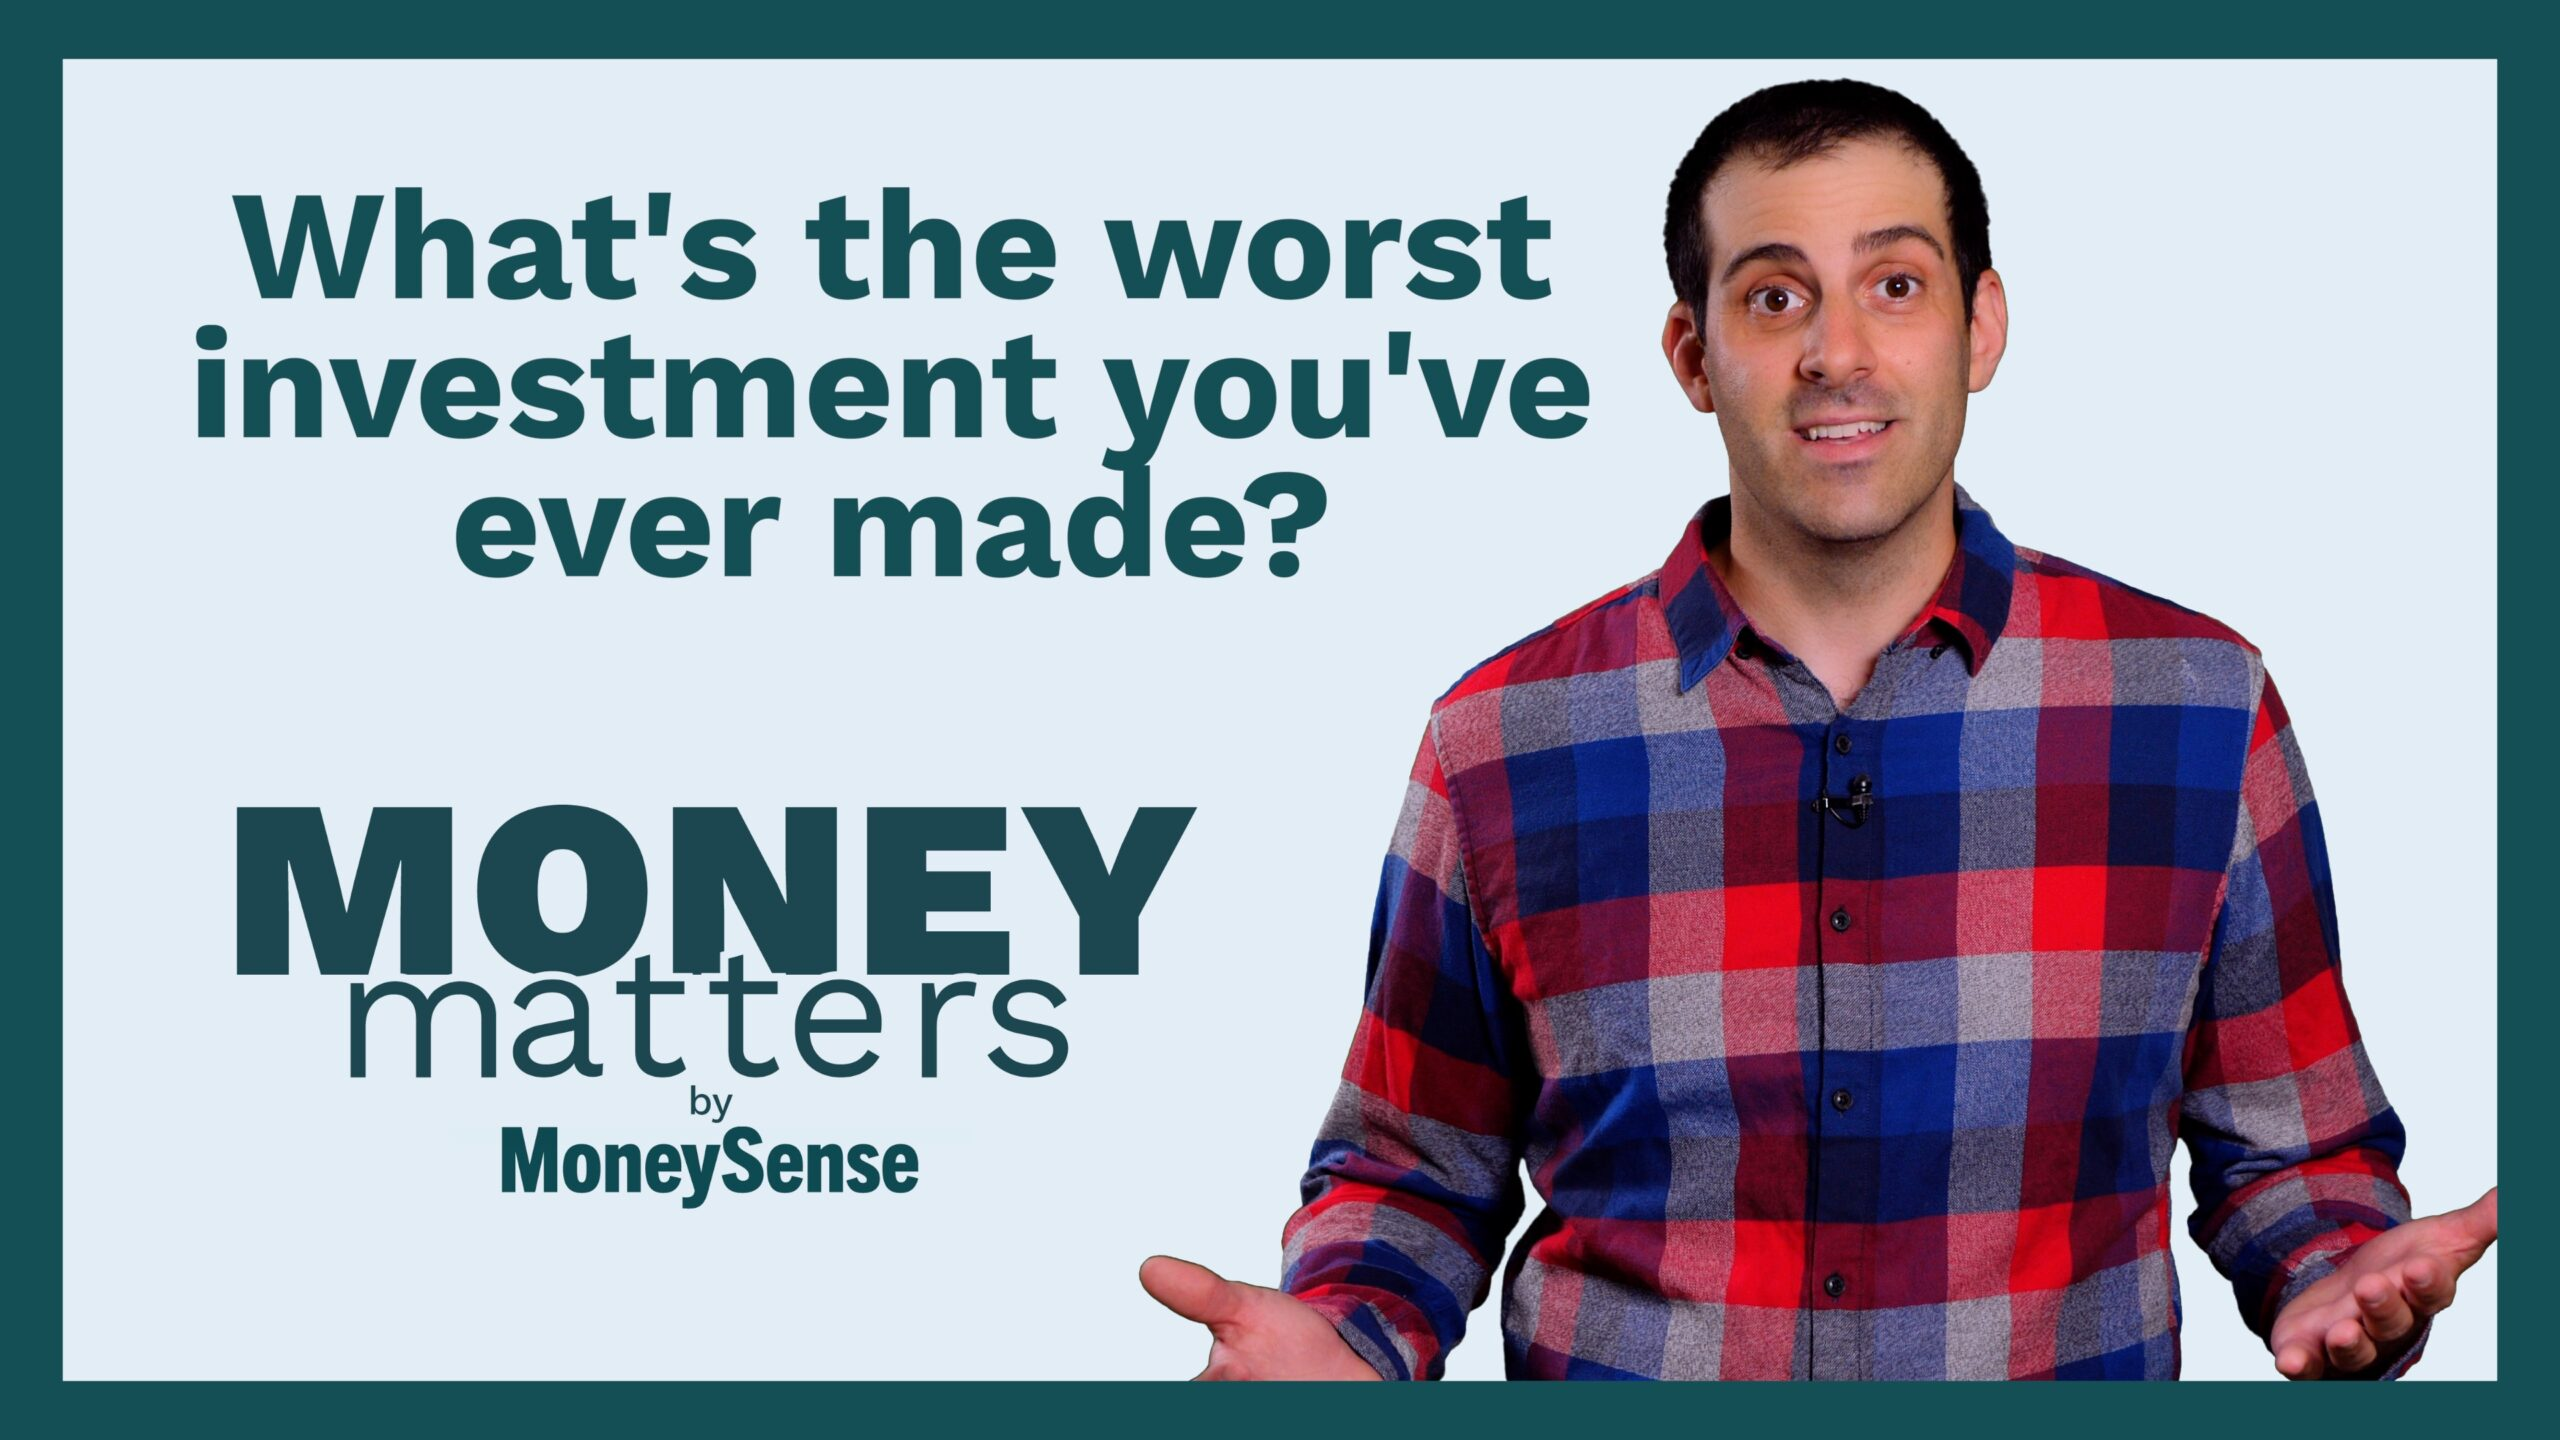 money matters what's the worse investment you've ever made